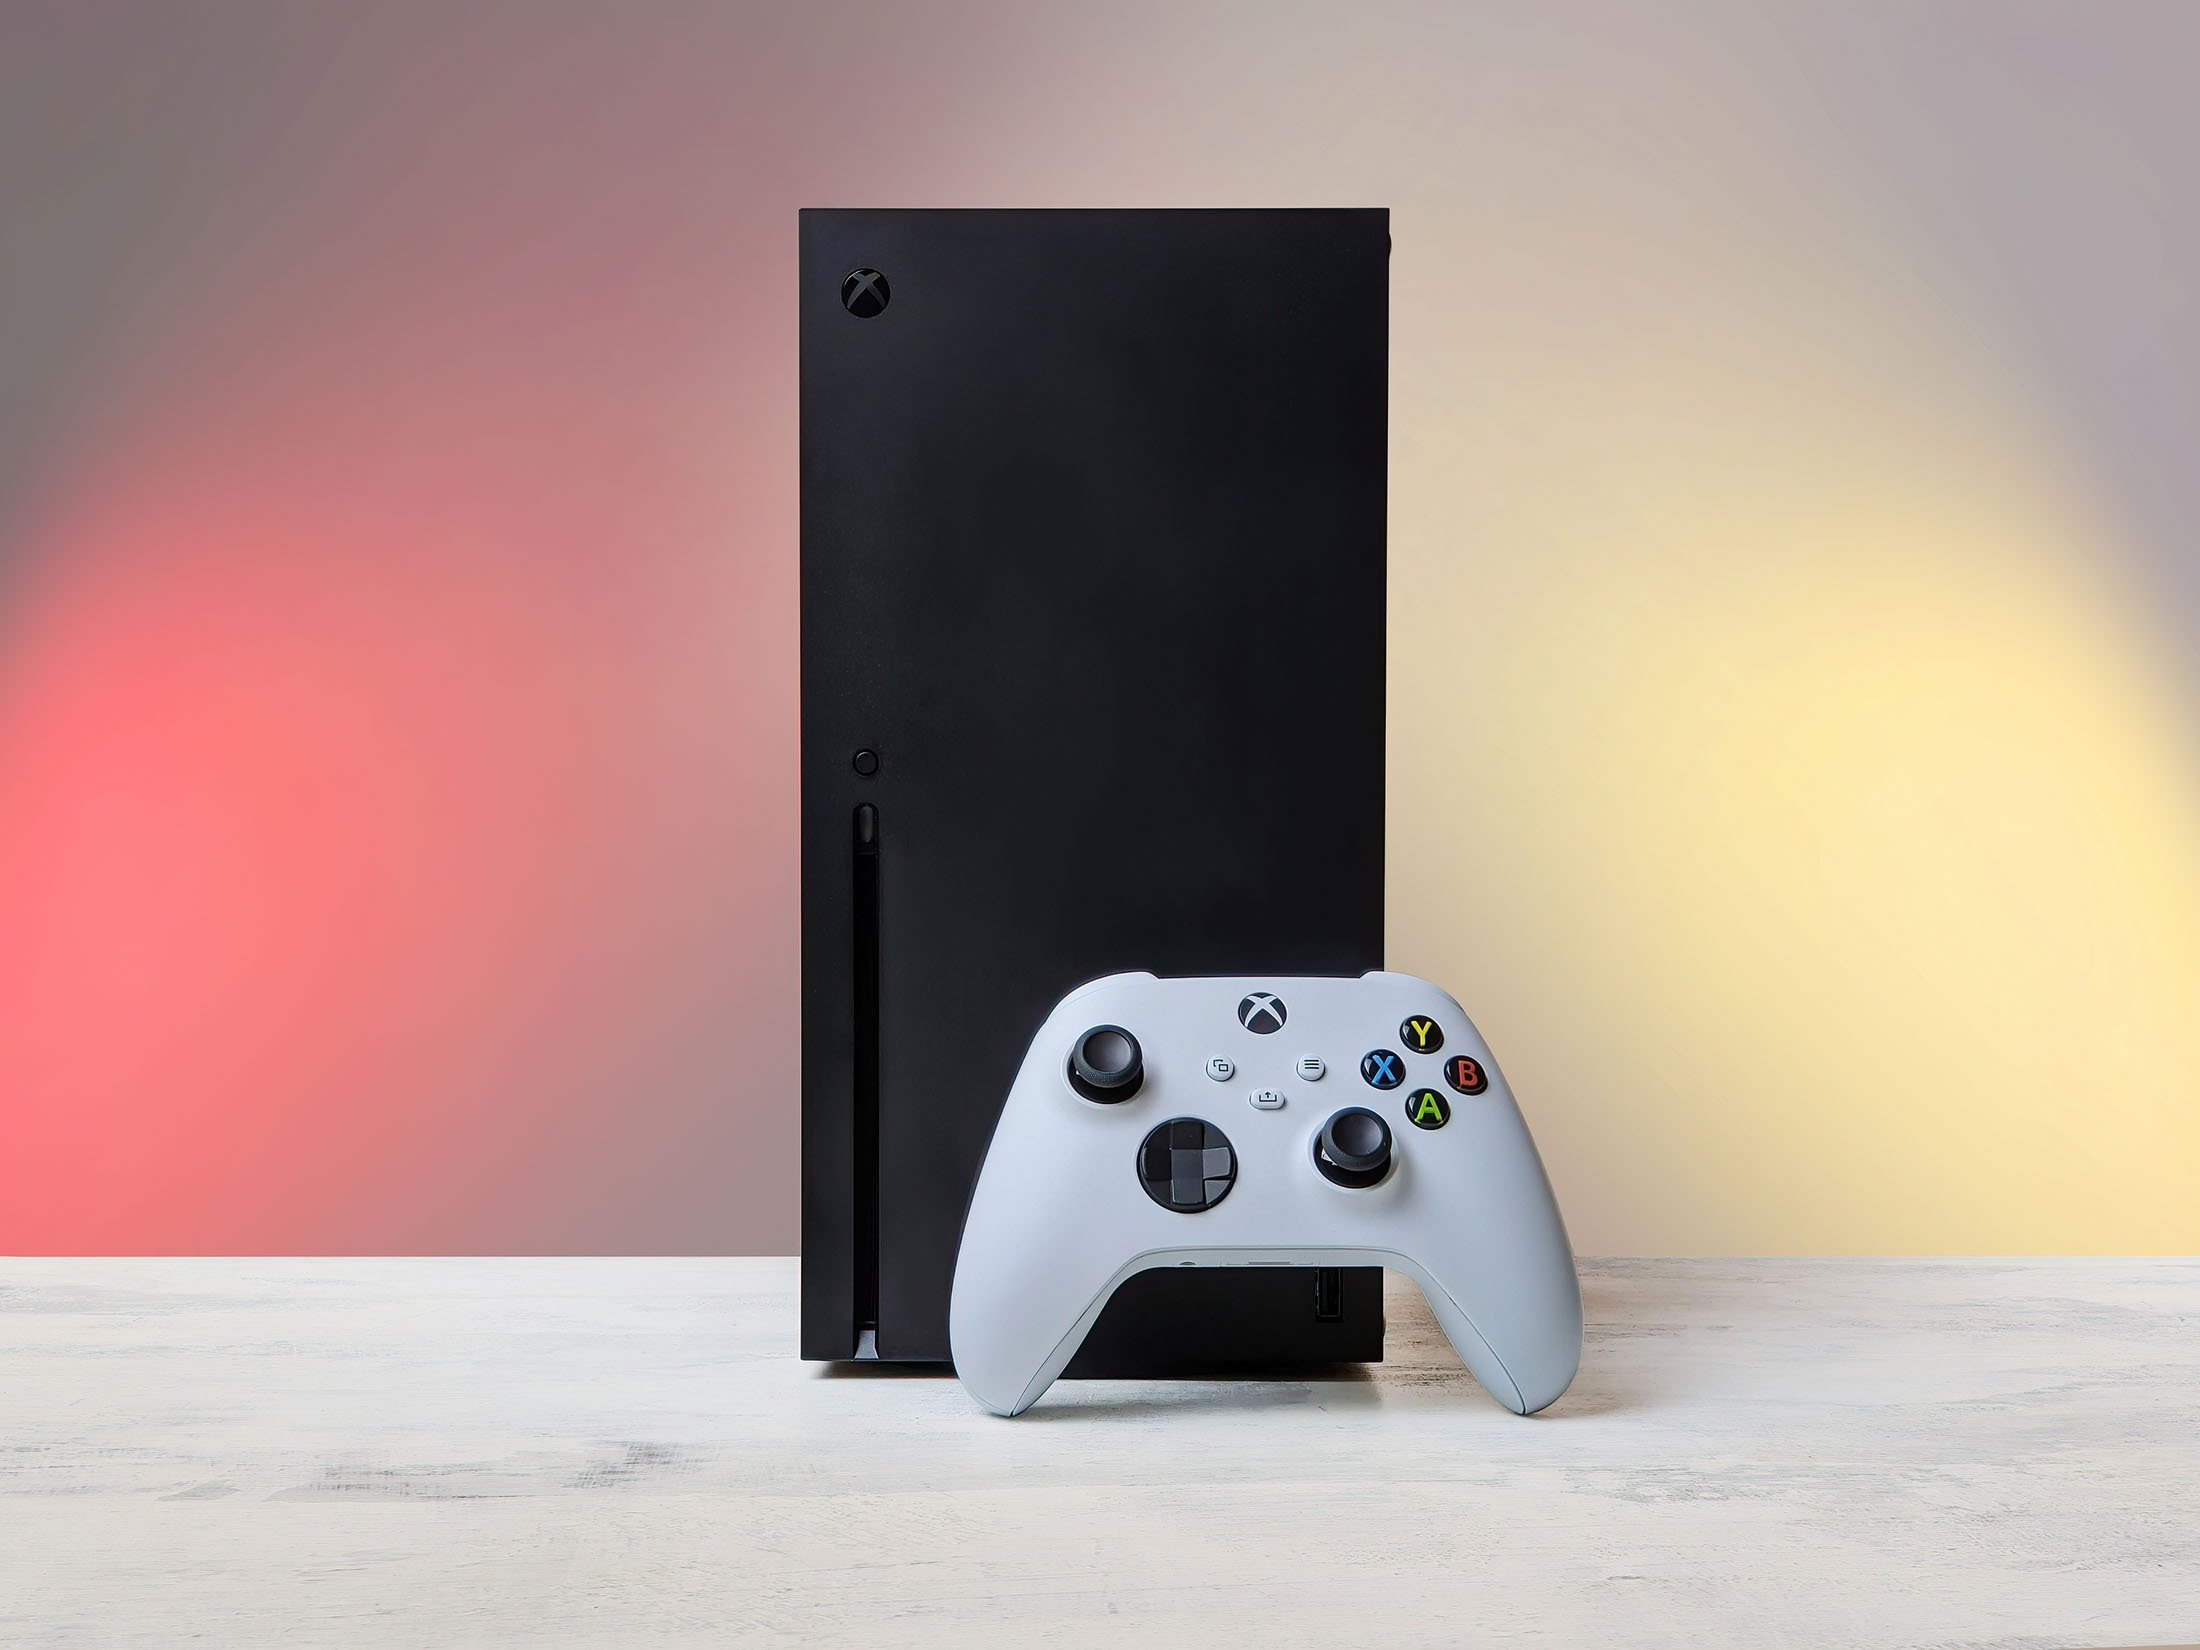 A Microsoft Xbox Series X console and controller seen in Moscow, Russia, Nov. 5, 2020. (Shutterstock Photo)